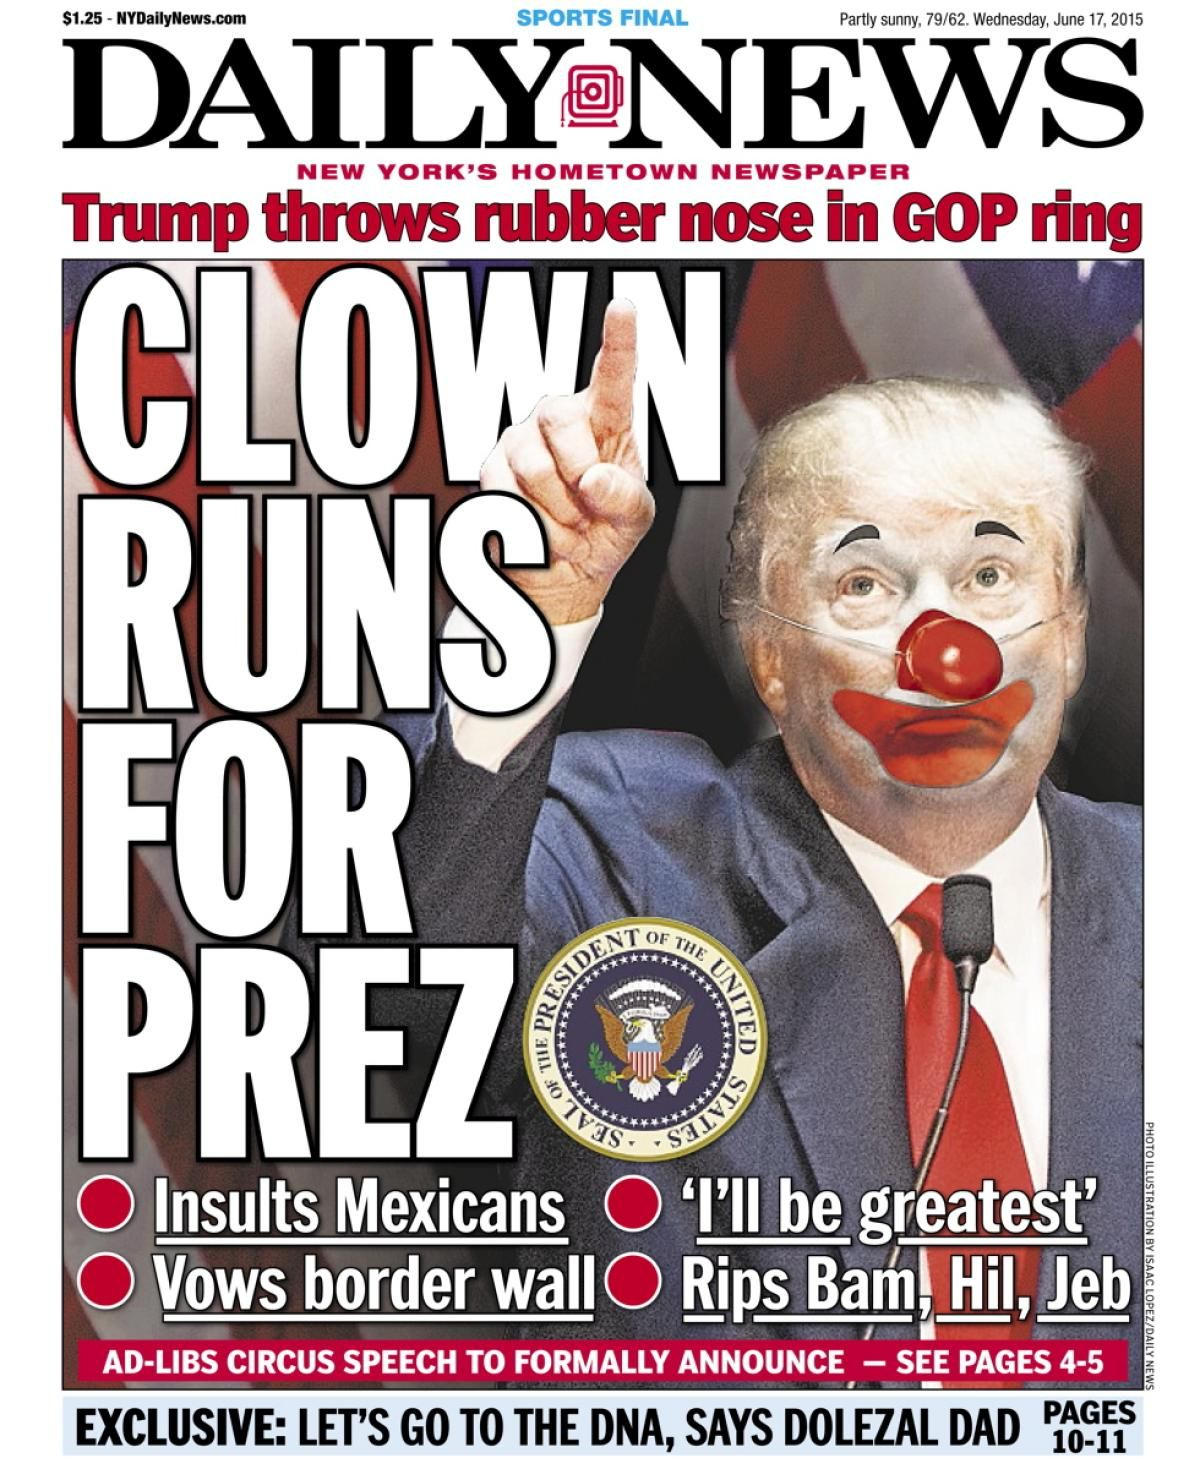 Women will continue to stand up for our rights after march new york daily news -  Clown Runs For Prez Photos Top New York Daily News Front Pages Of 2015